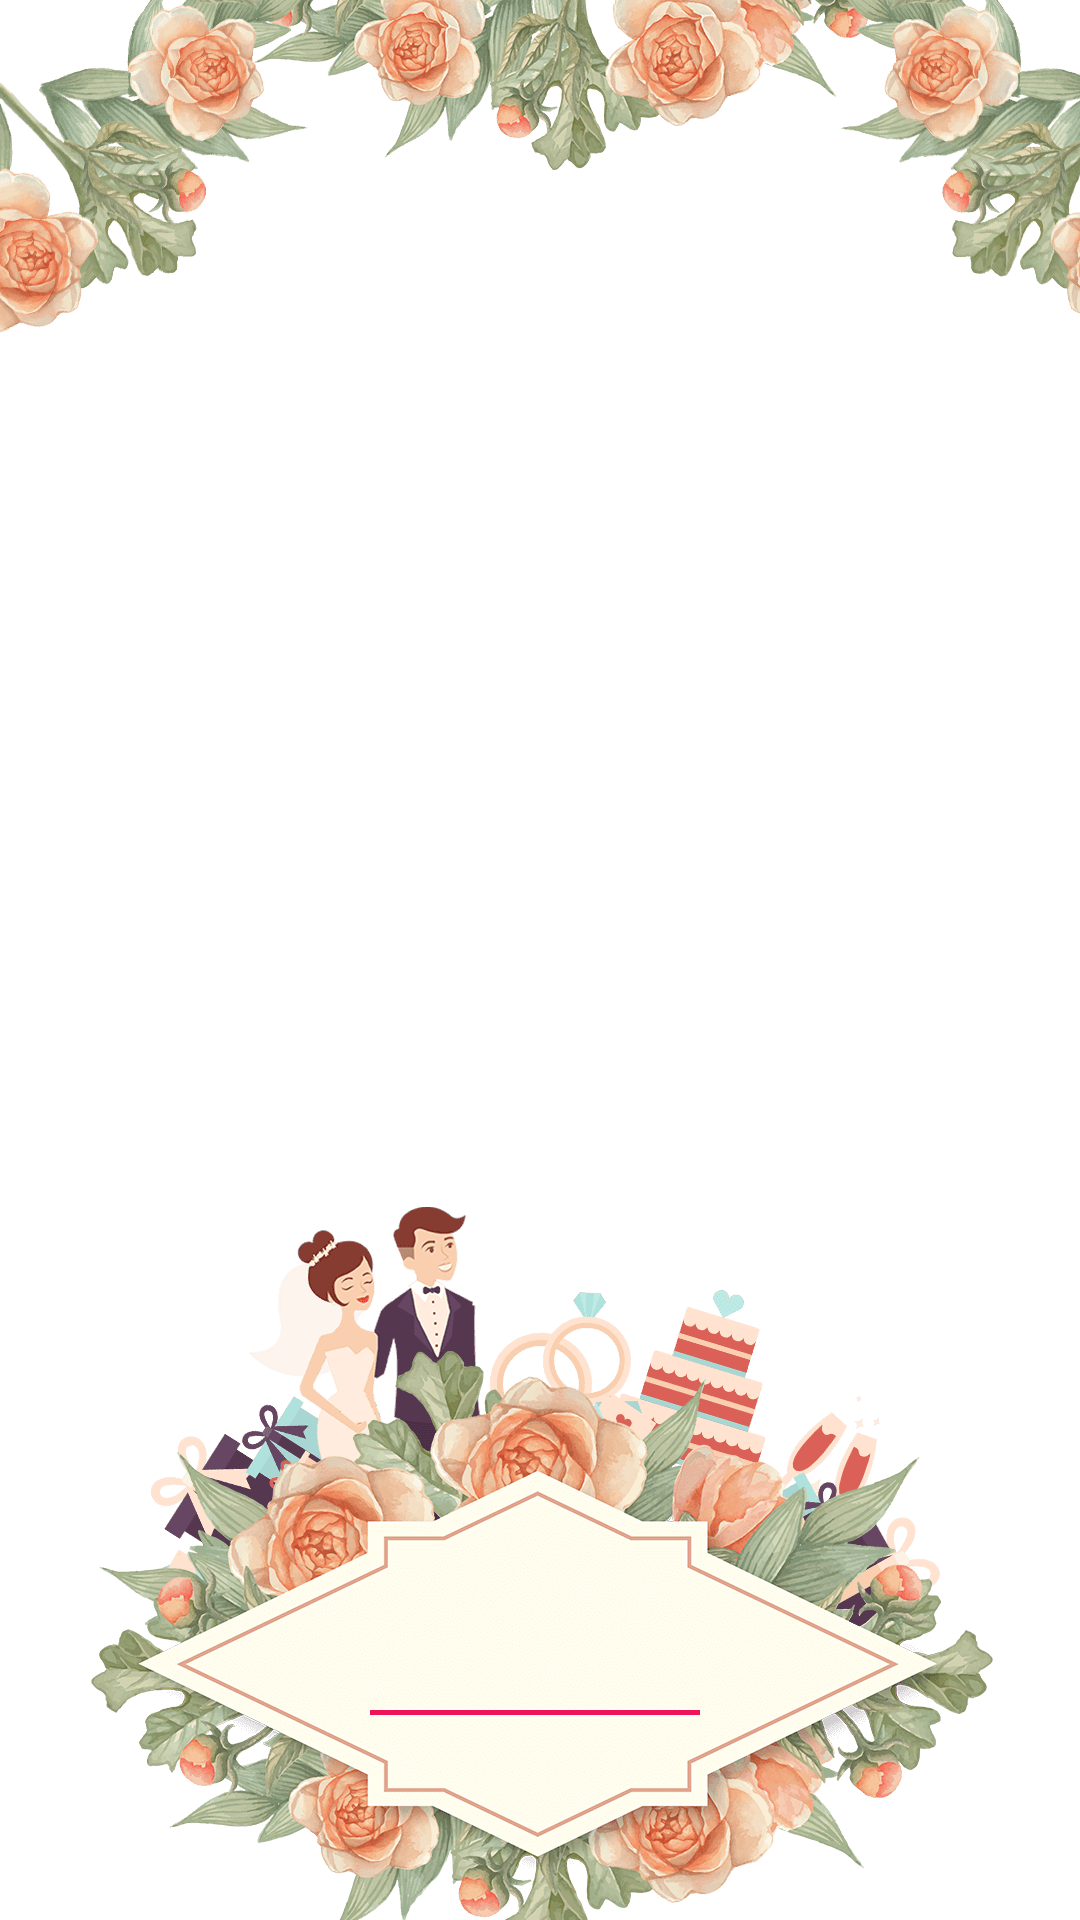 Pastel floral wedding snapchat filter geofilter maker on filterpop pastel floral wedding snapchat filter geofilter maker on filterpop stopboris Image collections